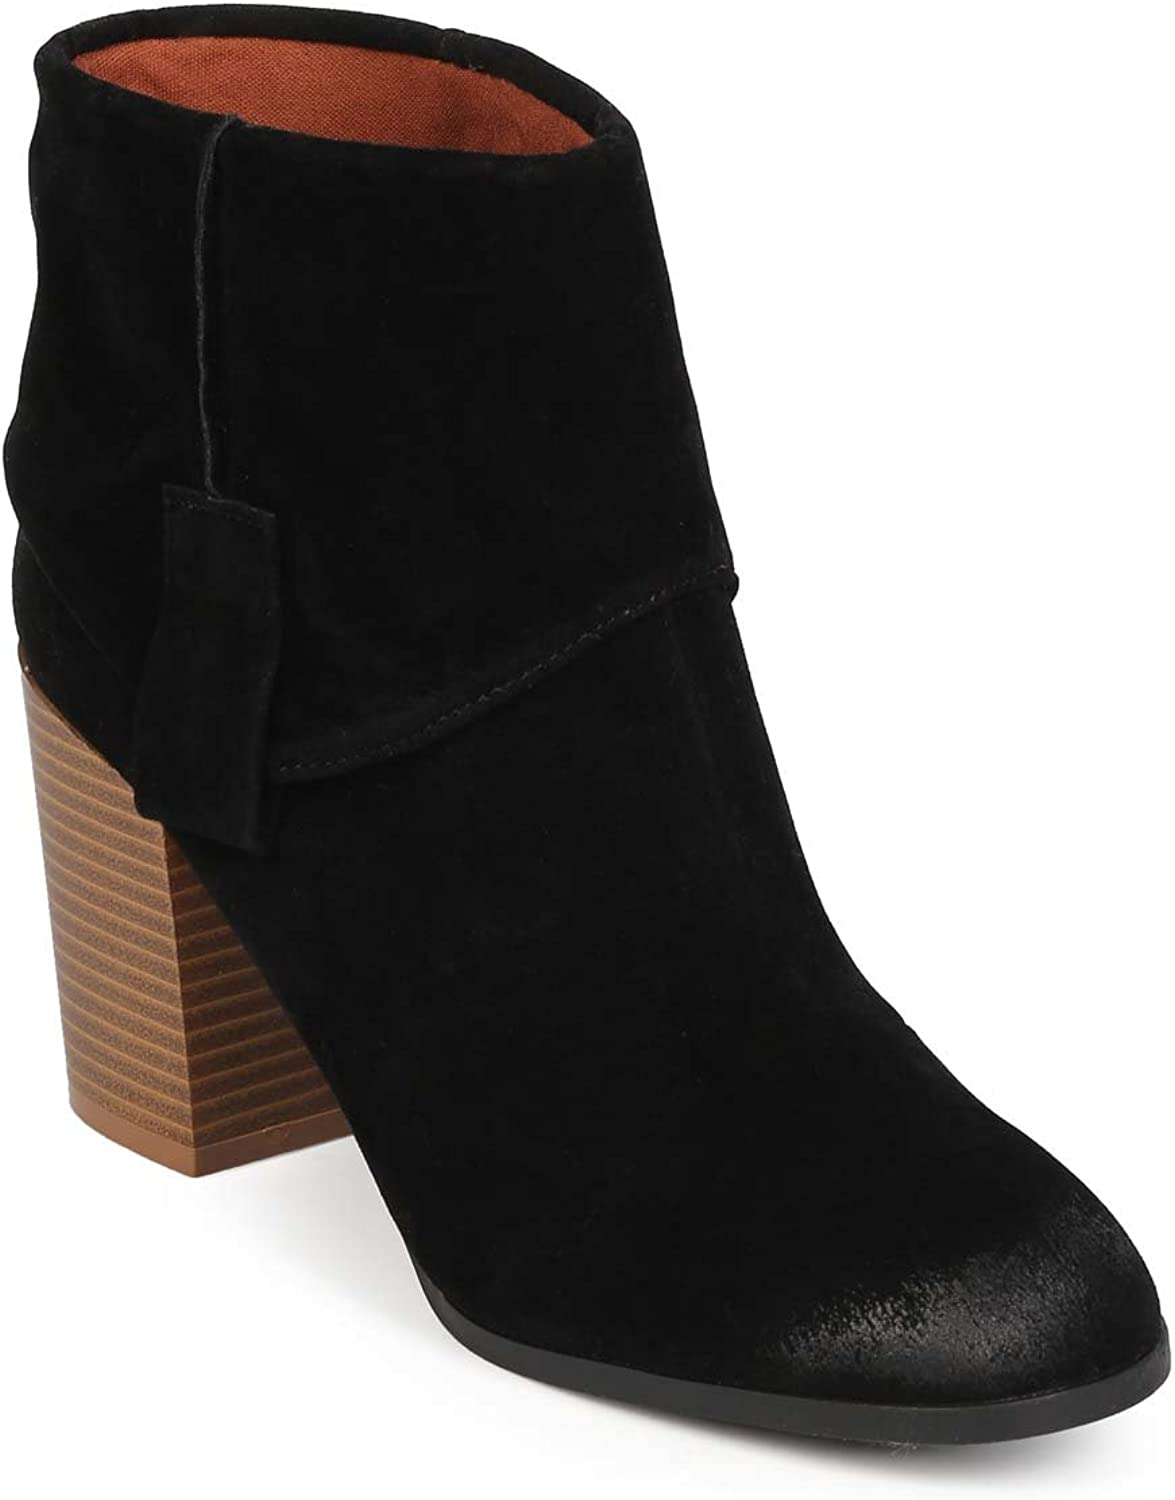 Qupid Women Suede Almond Toe Western Foldover Pull On Bootie EF15 - Black